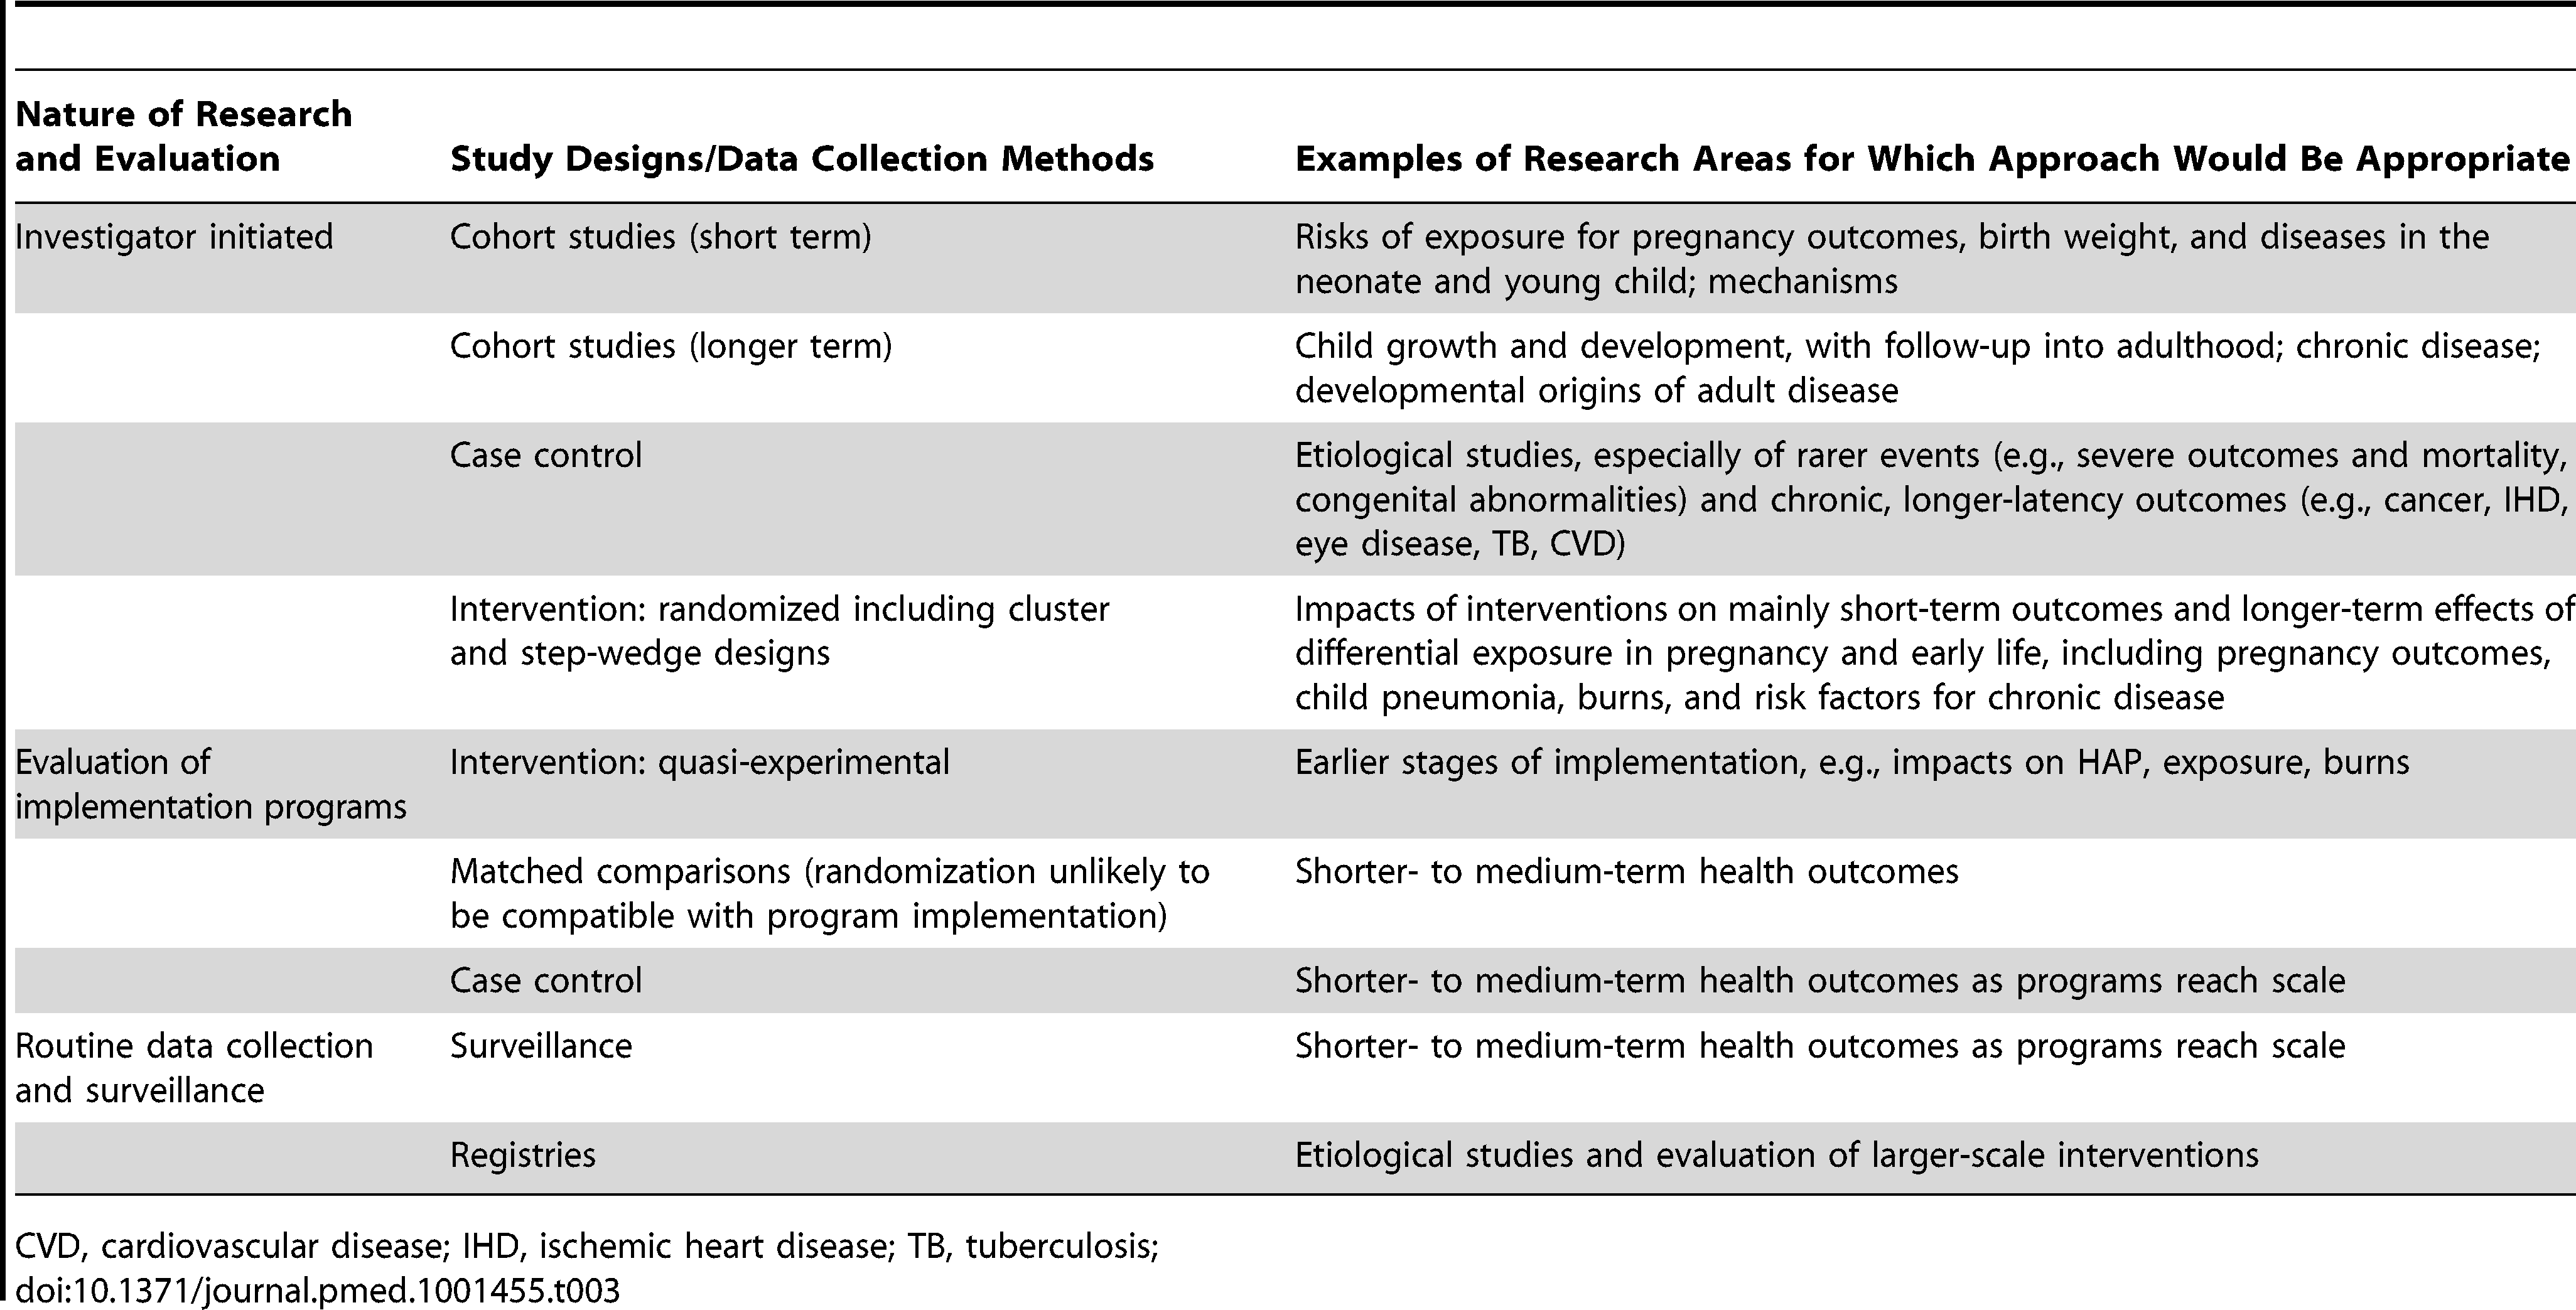 Approaches and key study designs required to address research and evaluation priorities.